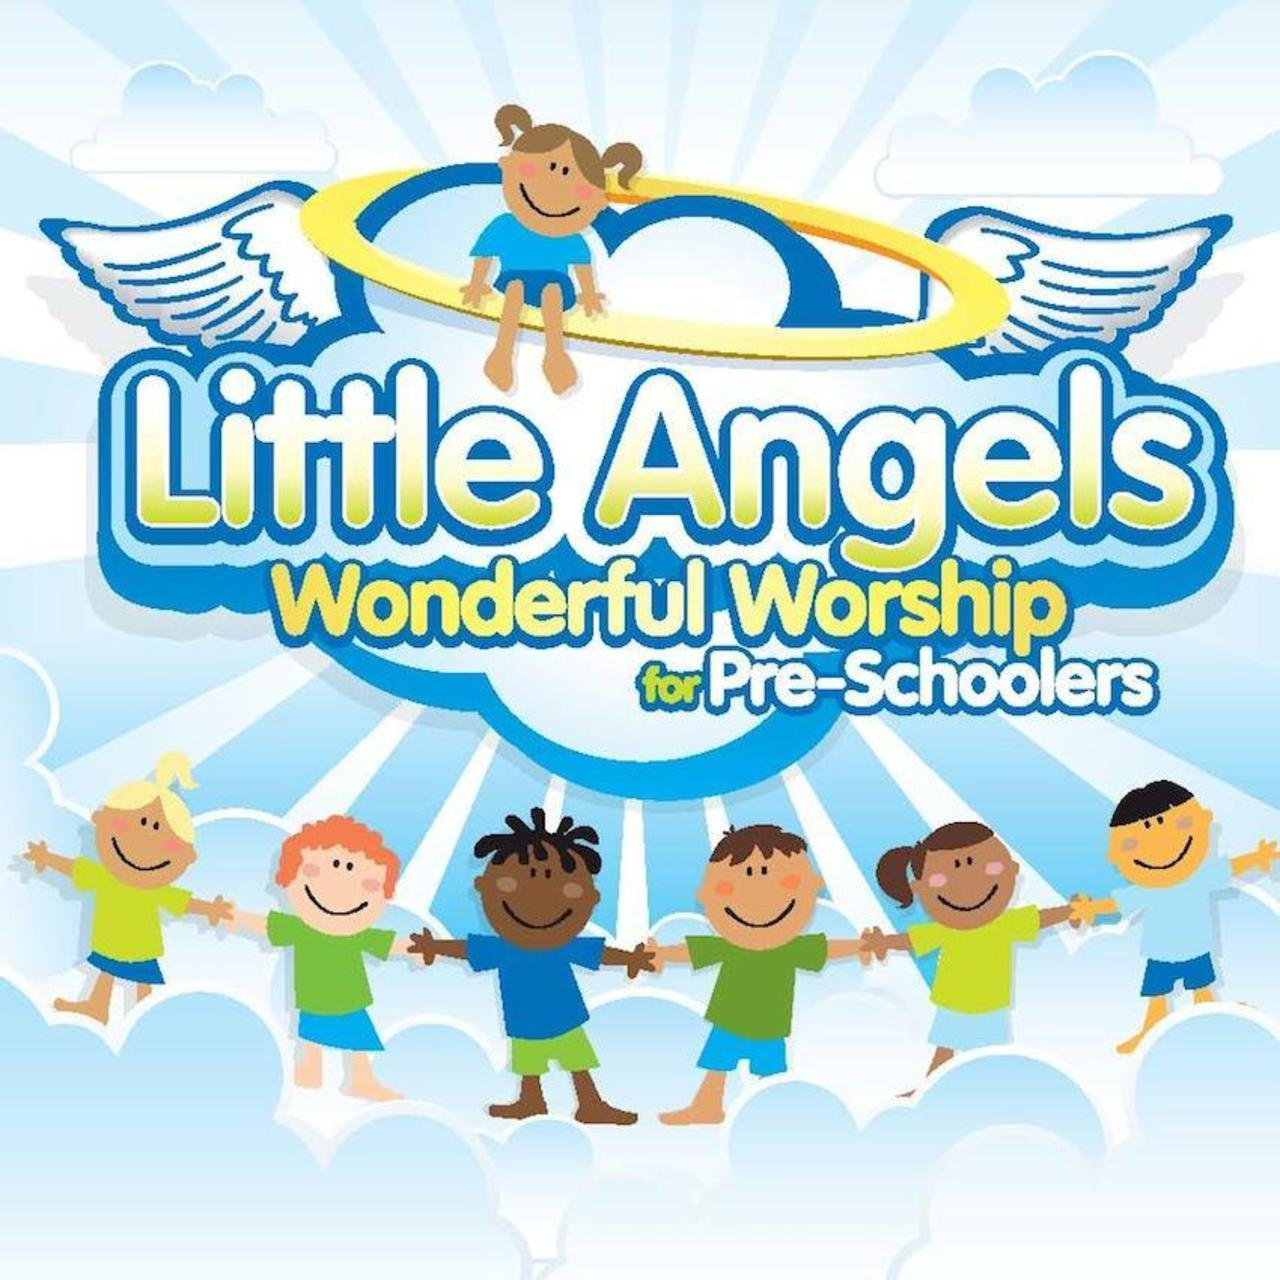 Little Angels: Wonderful Worship for Pre-Schoolers